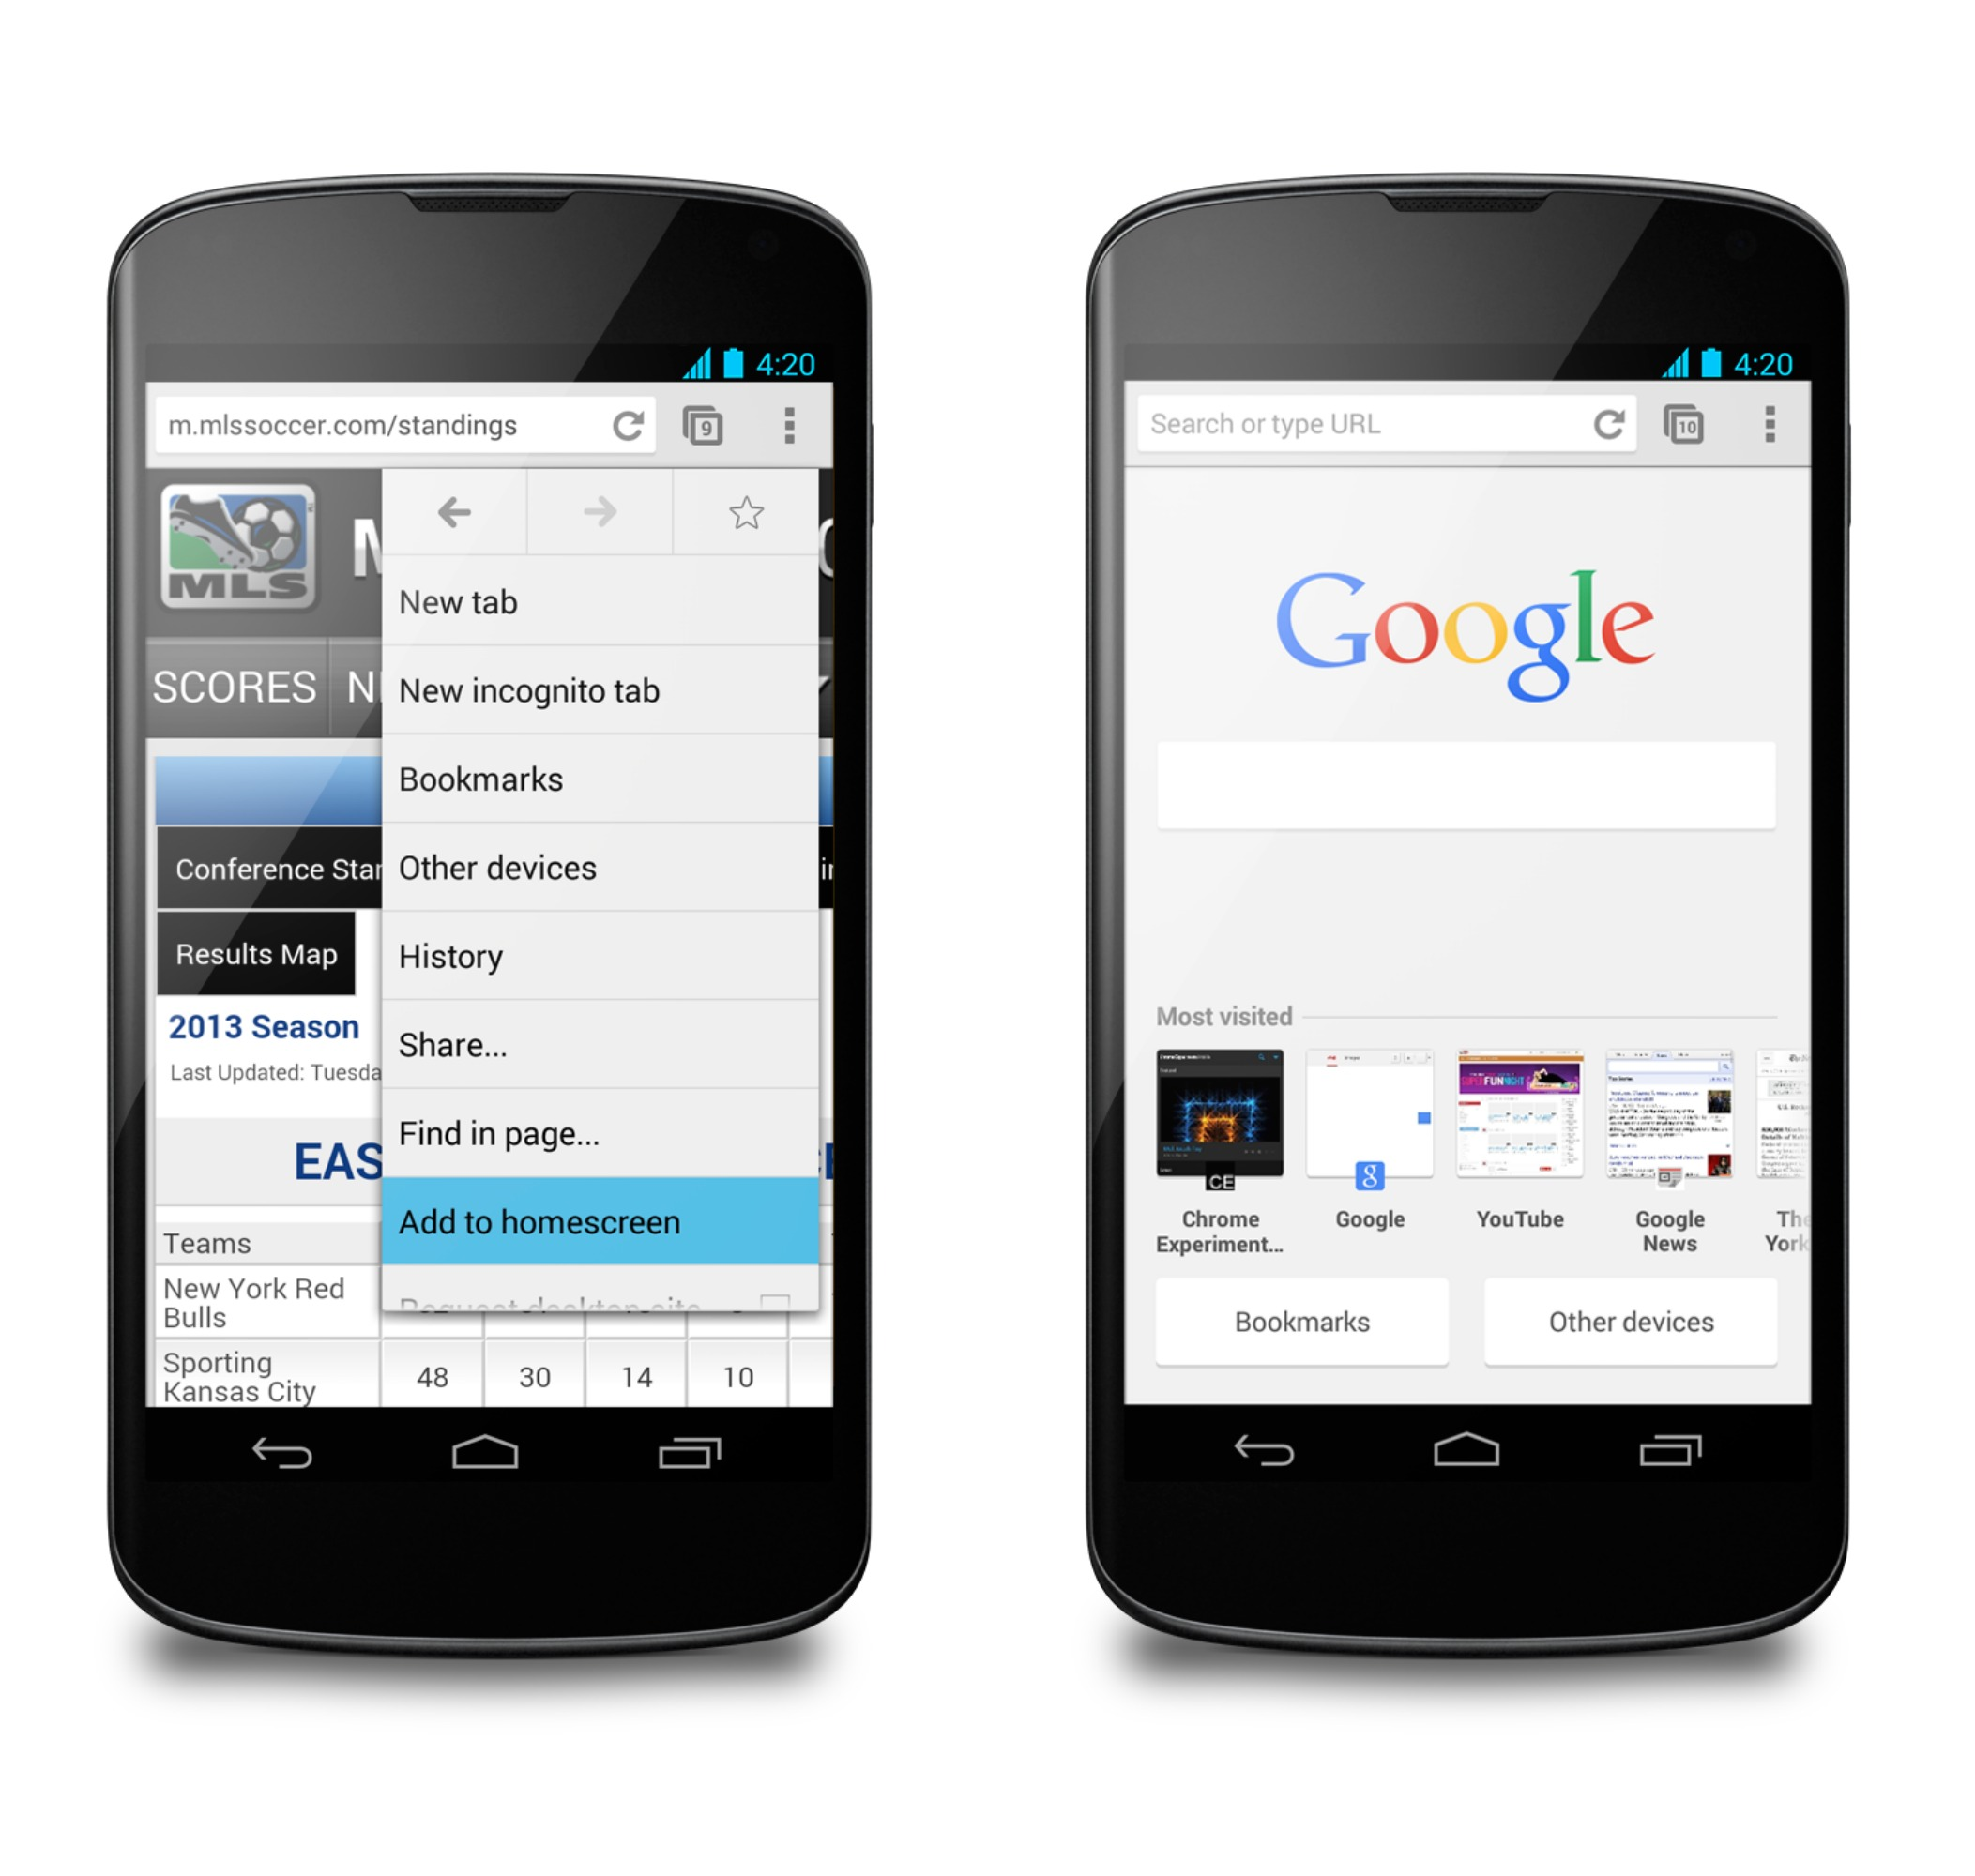 Schermate del browser Chrome per Android